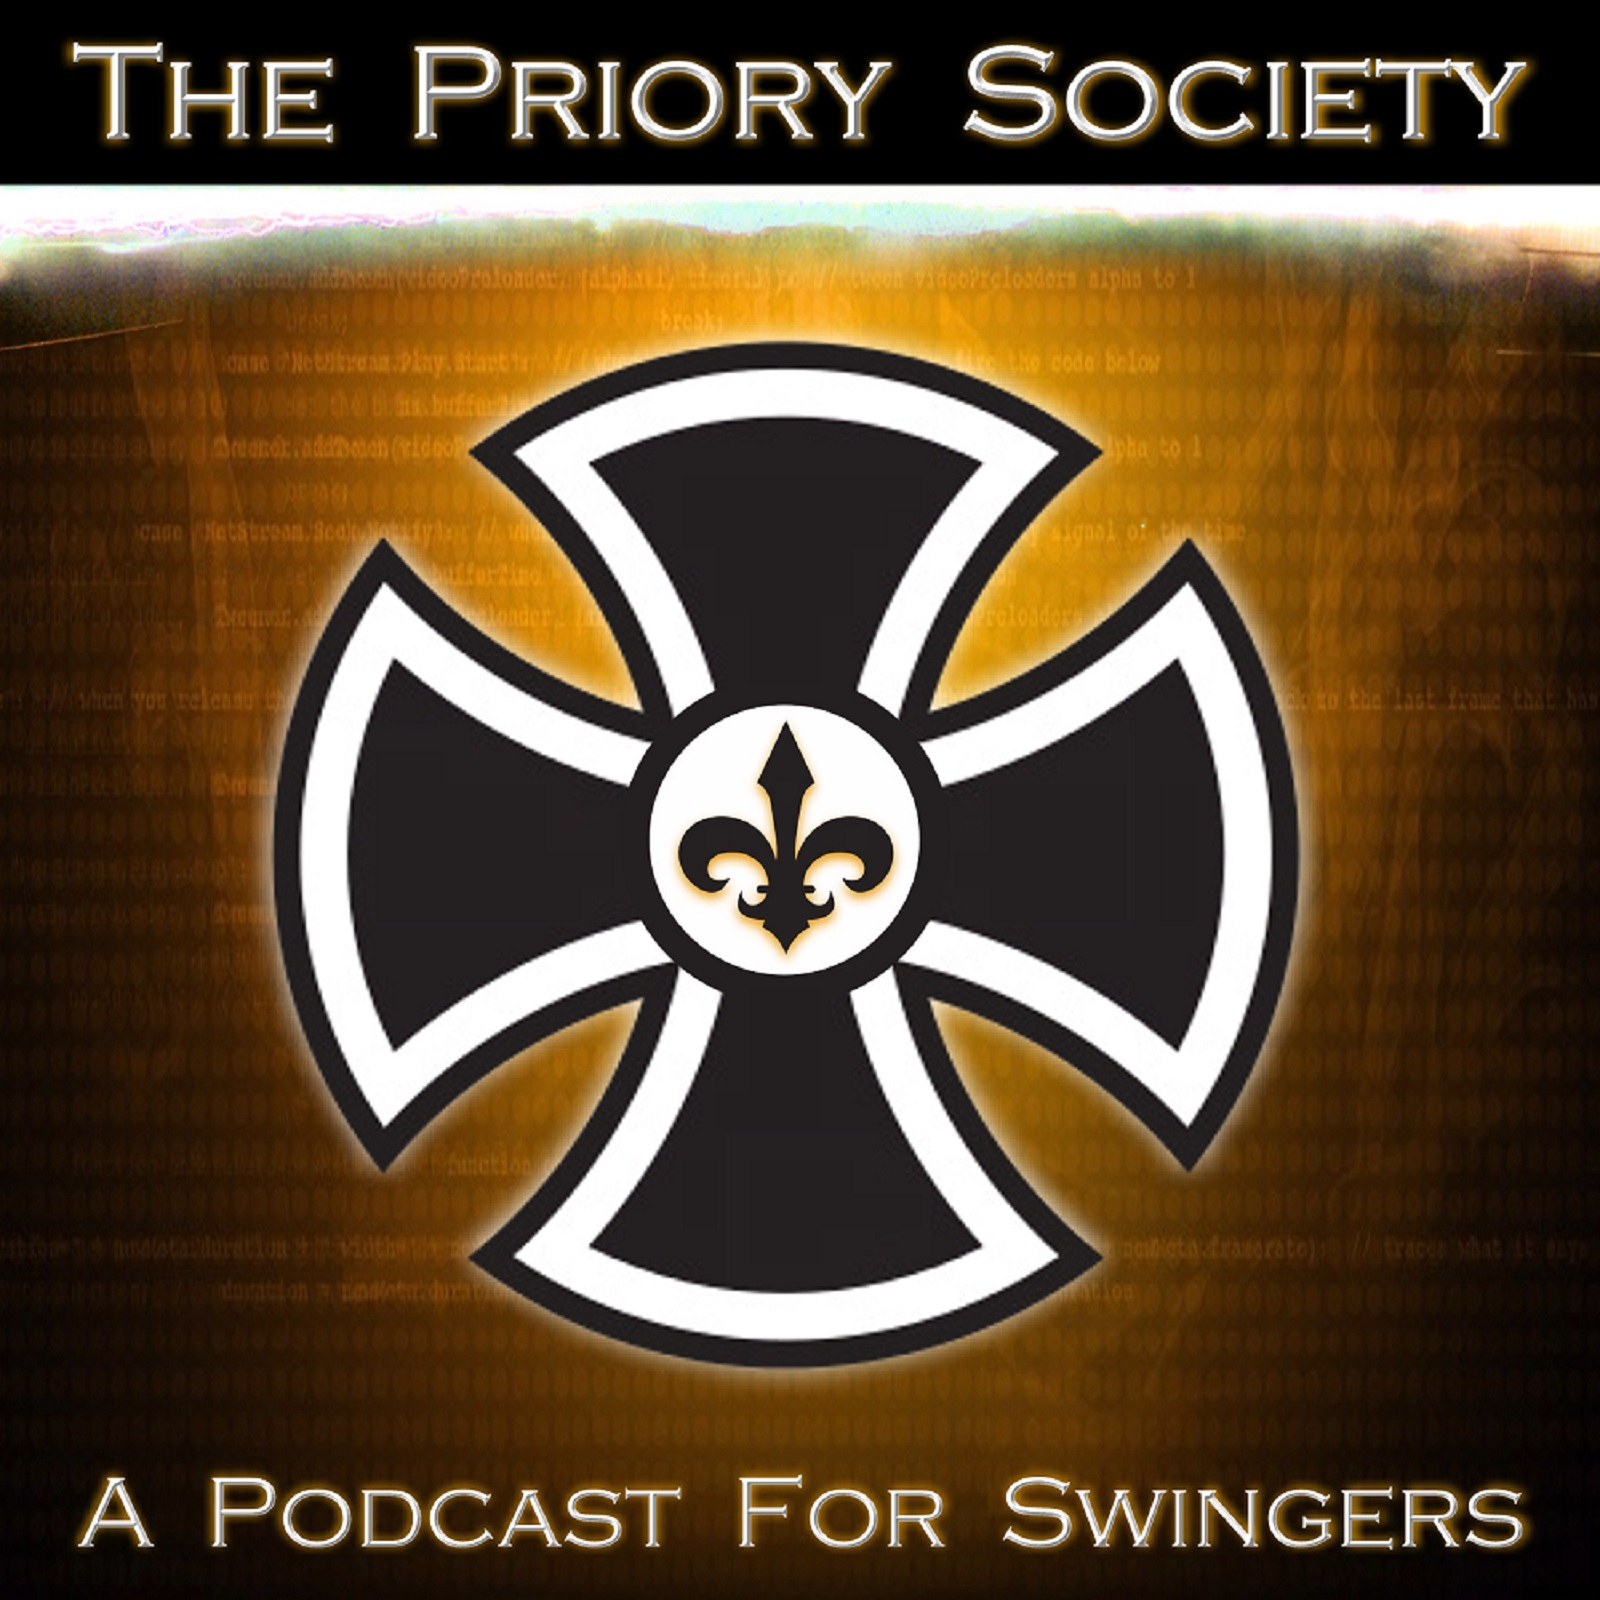 The Priory Society - Sex Podcast for Swingers show art